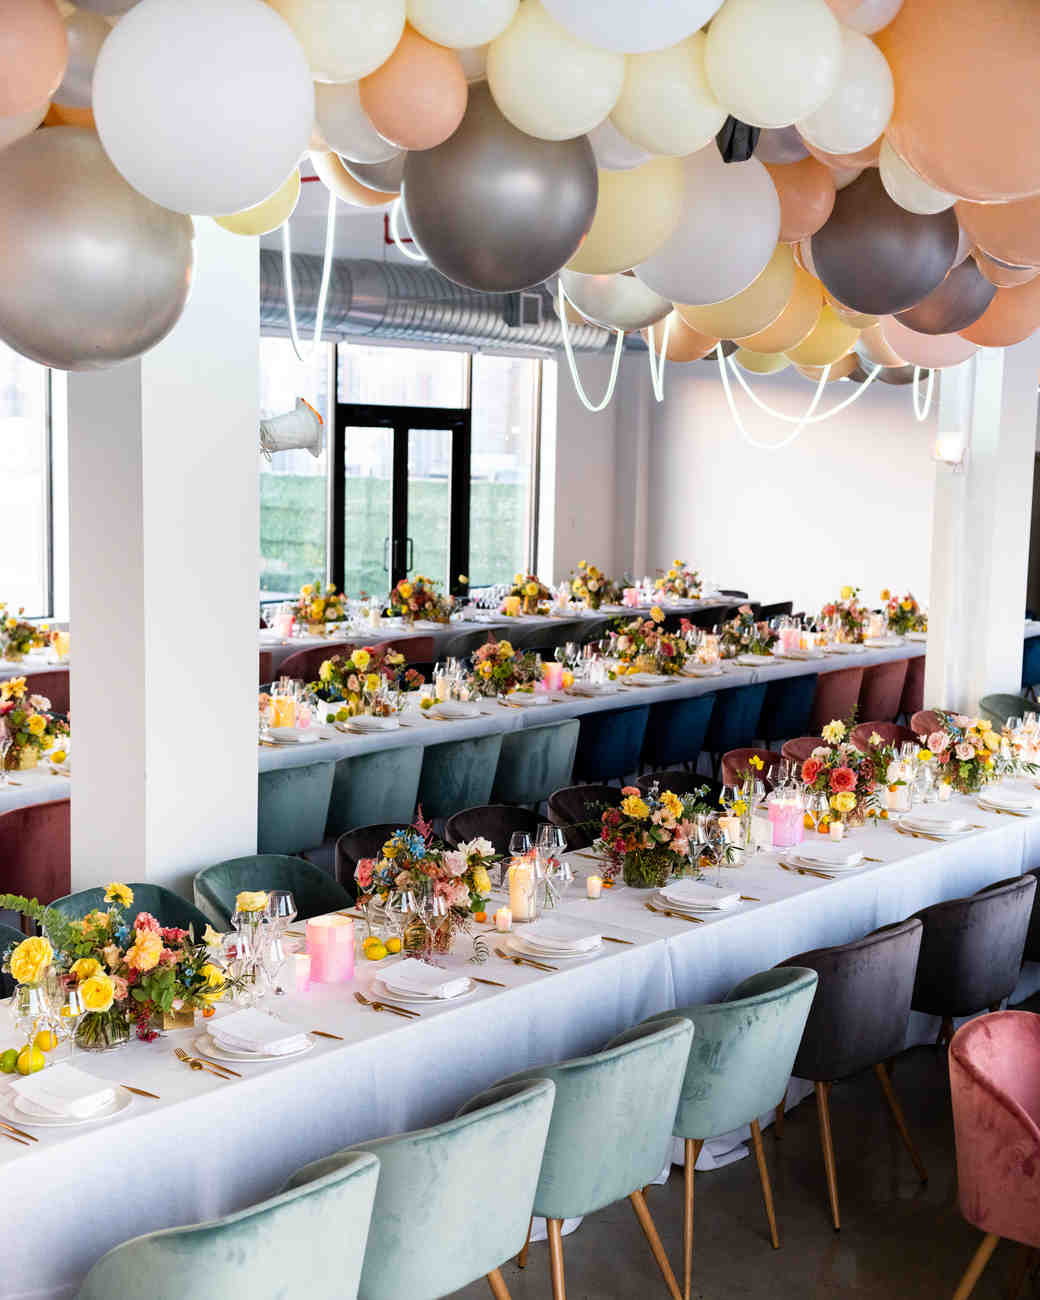 15 New Wedding Trends to Watch for in 2019, According to ...